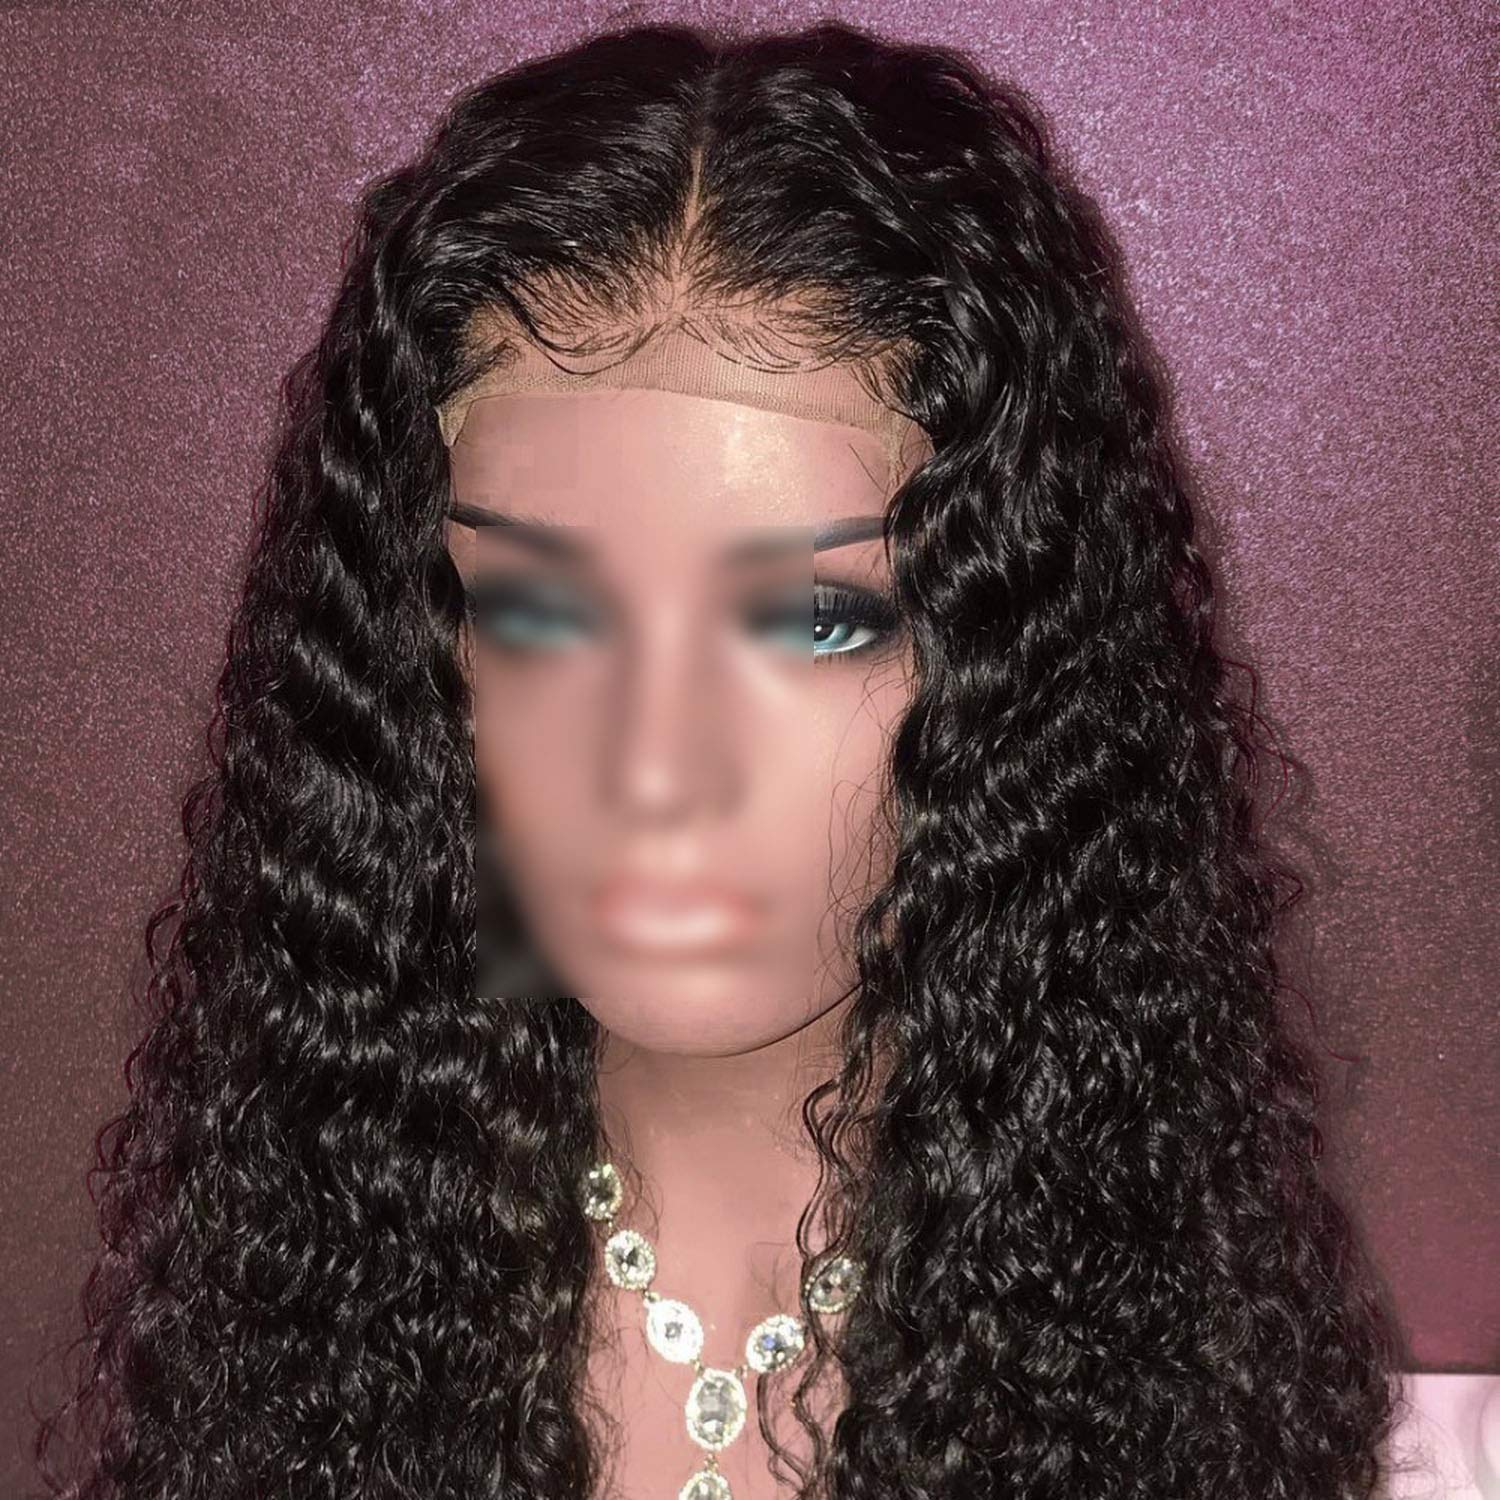 Human Hair WigsBrazilian Remy Hair Glueless Lace Wig Pre-Plucked With Baby Hair,Natural Color,10inches by Little Sophie (Image #3)